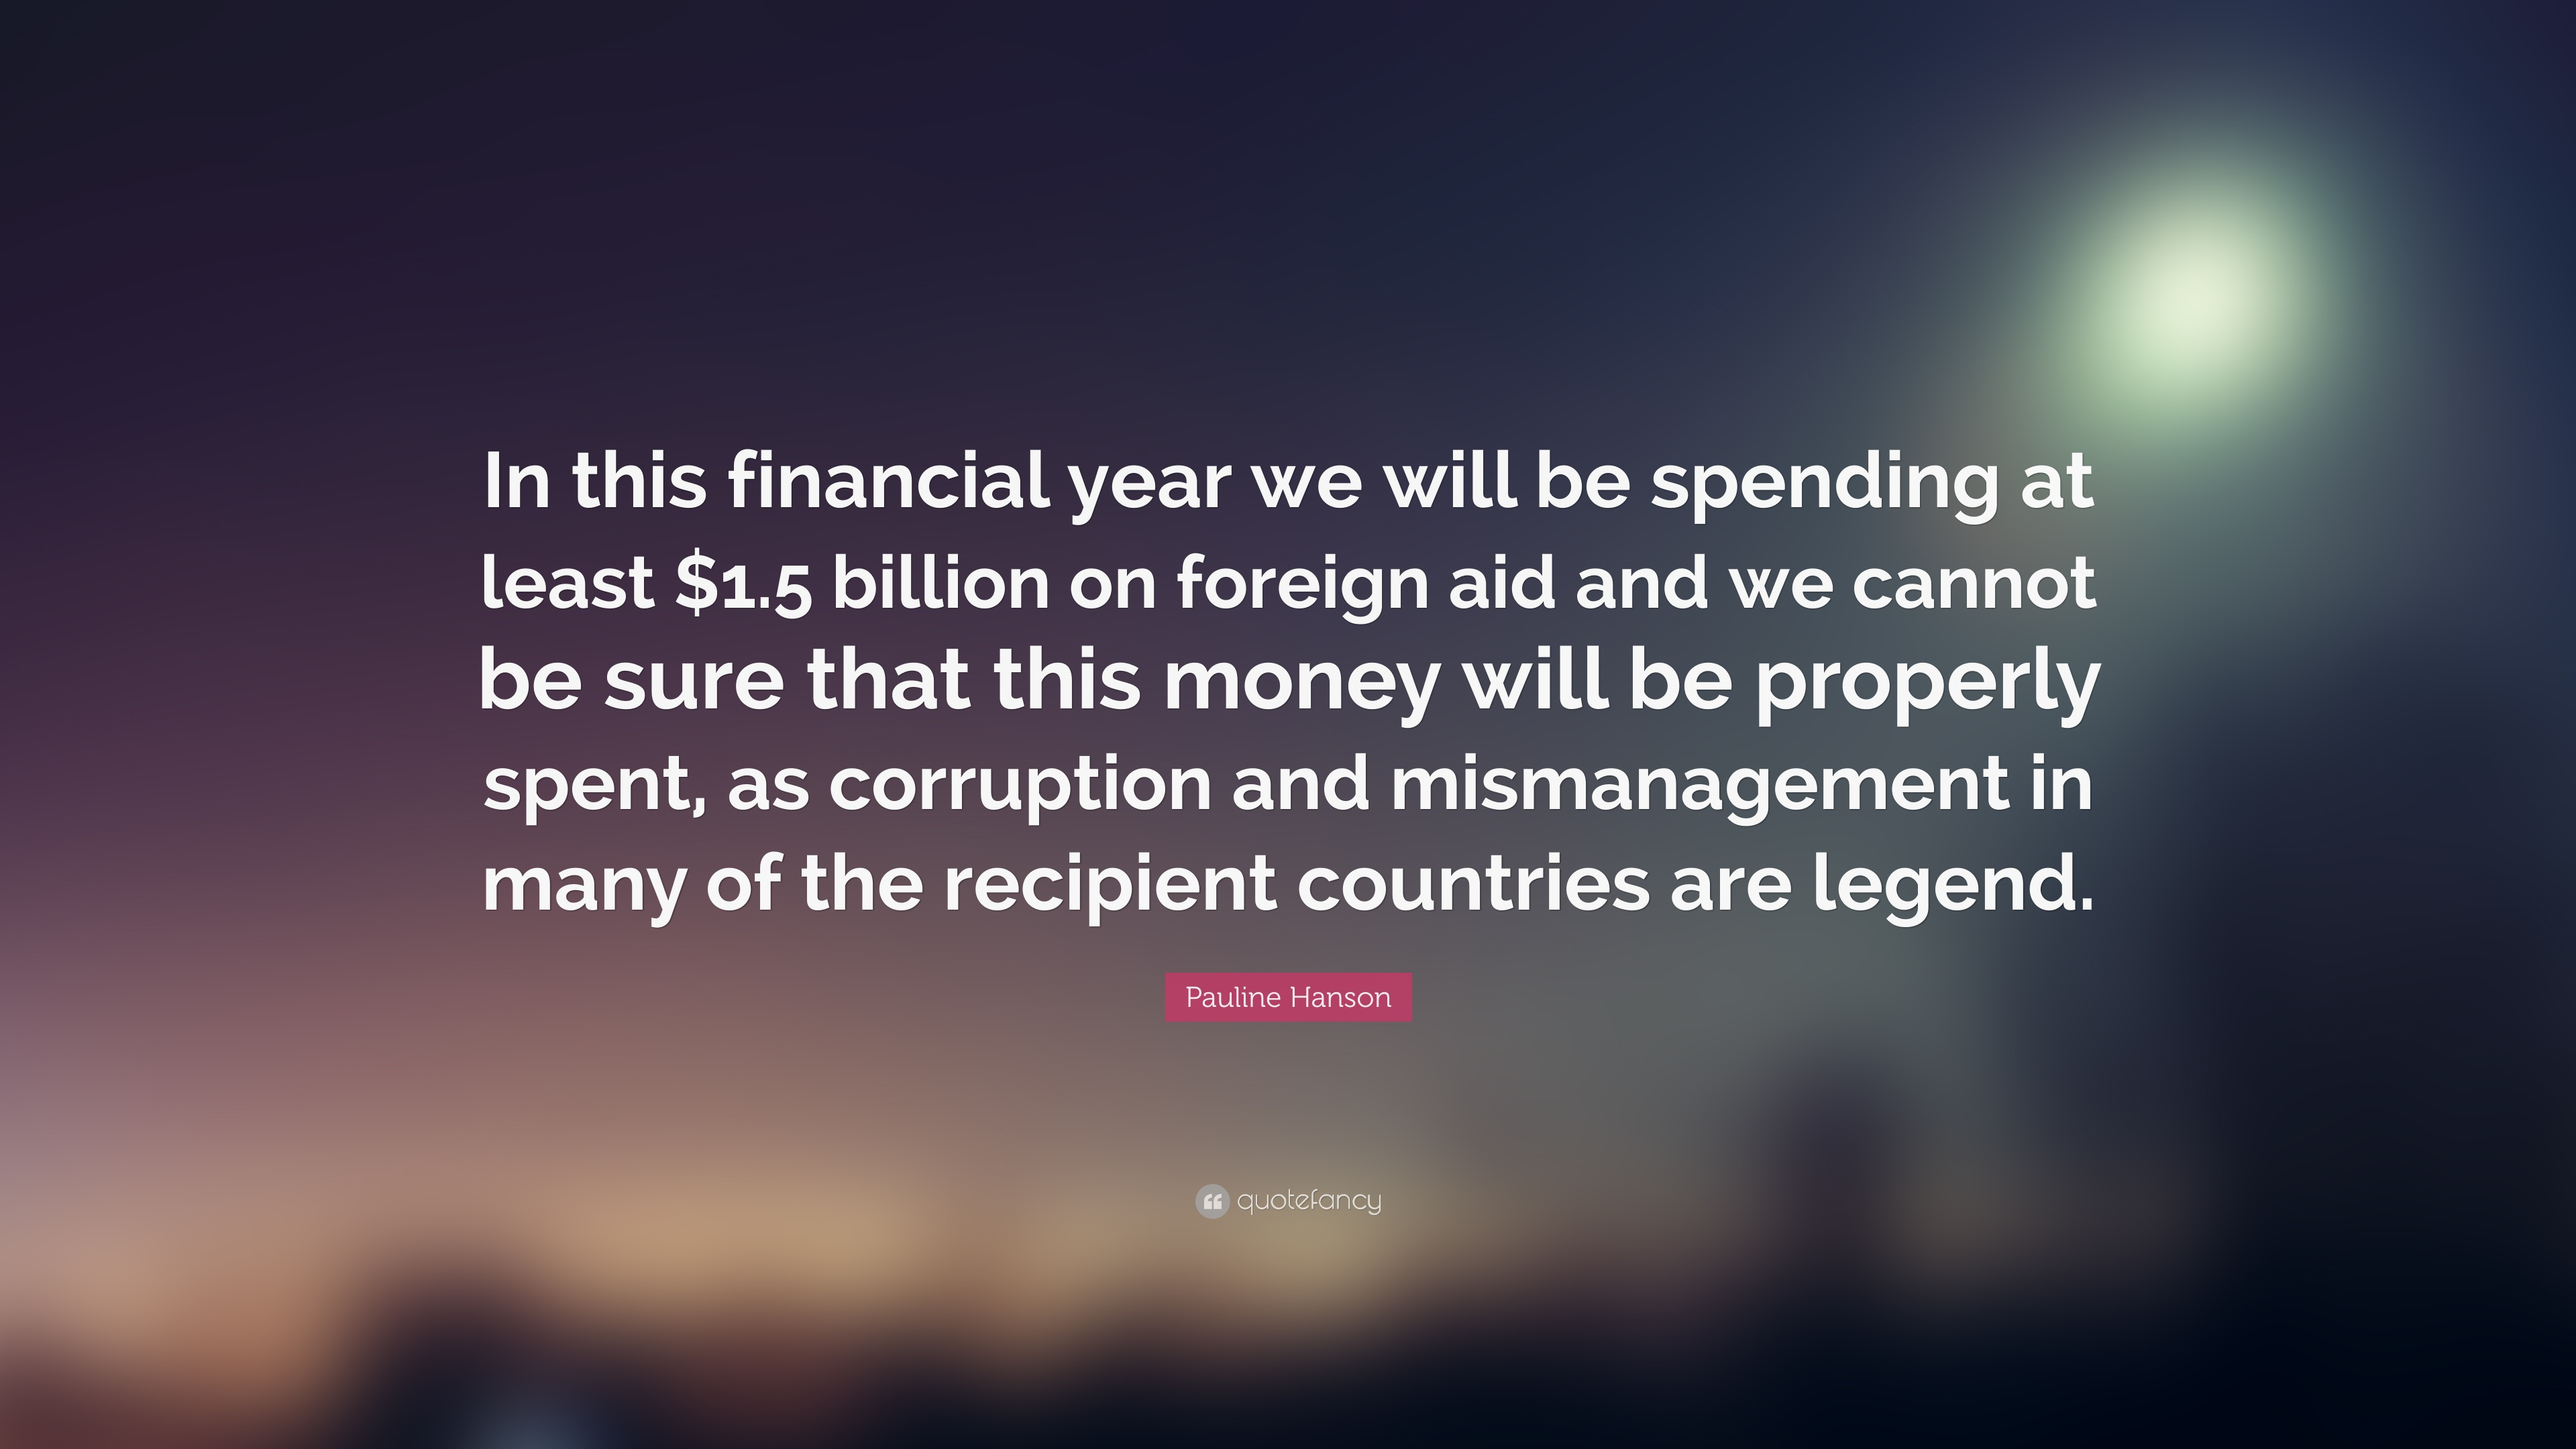 New Financial Year Quotes Twitter thumbnail